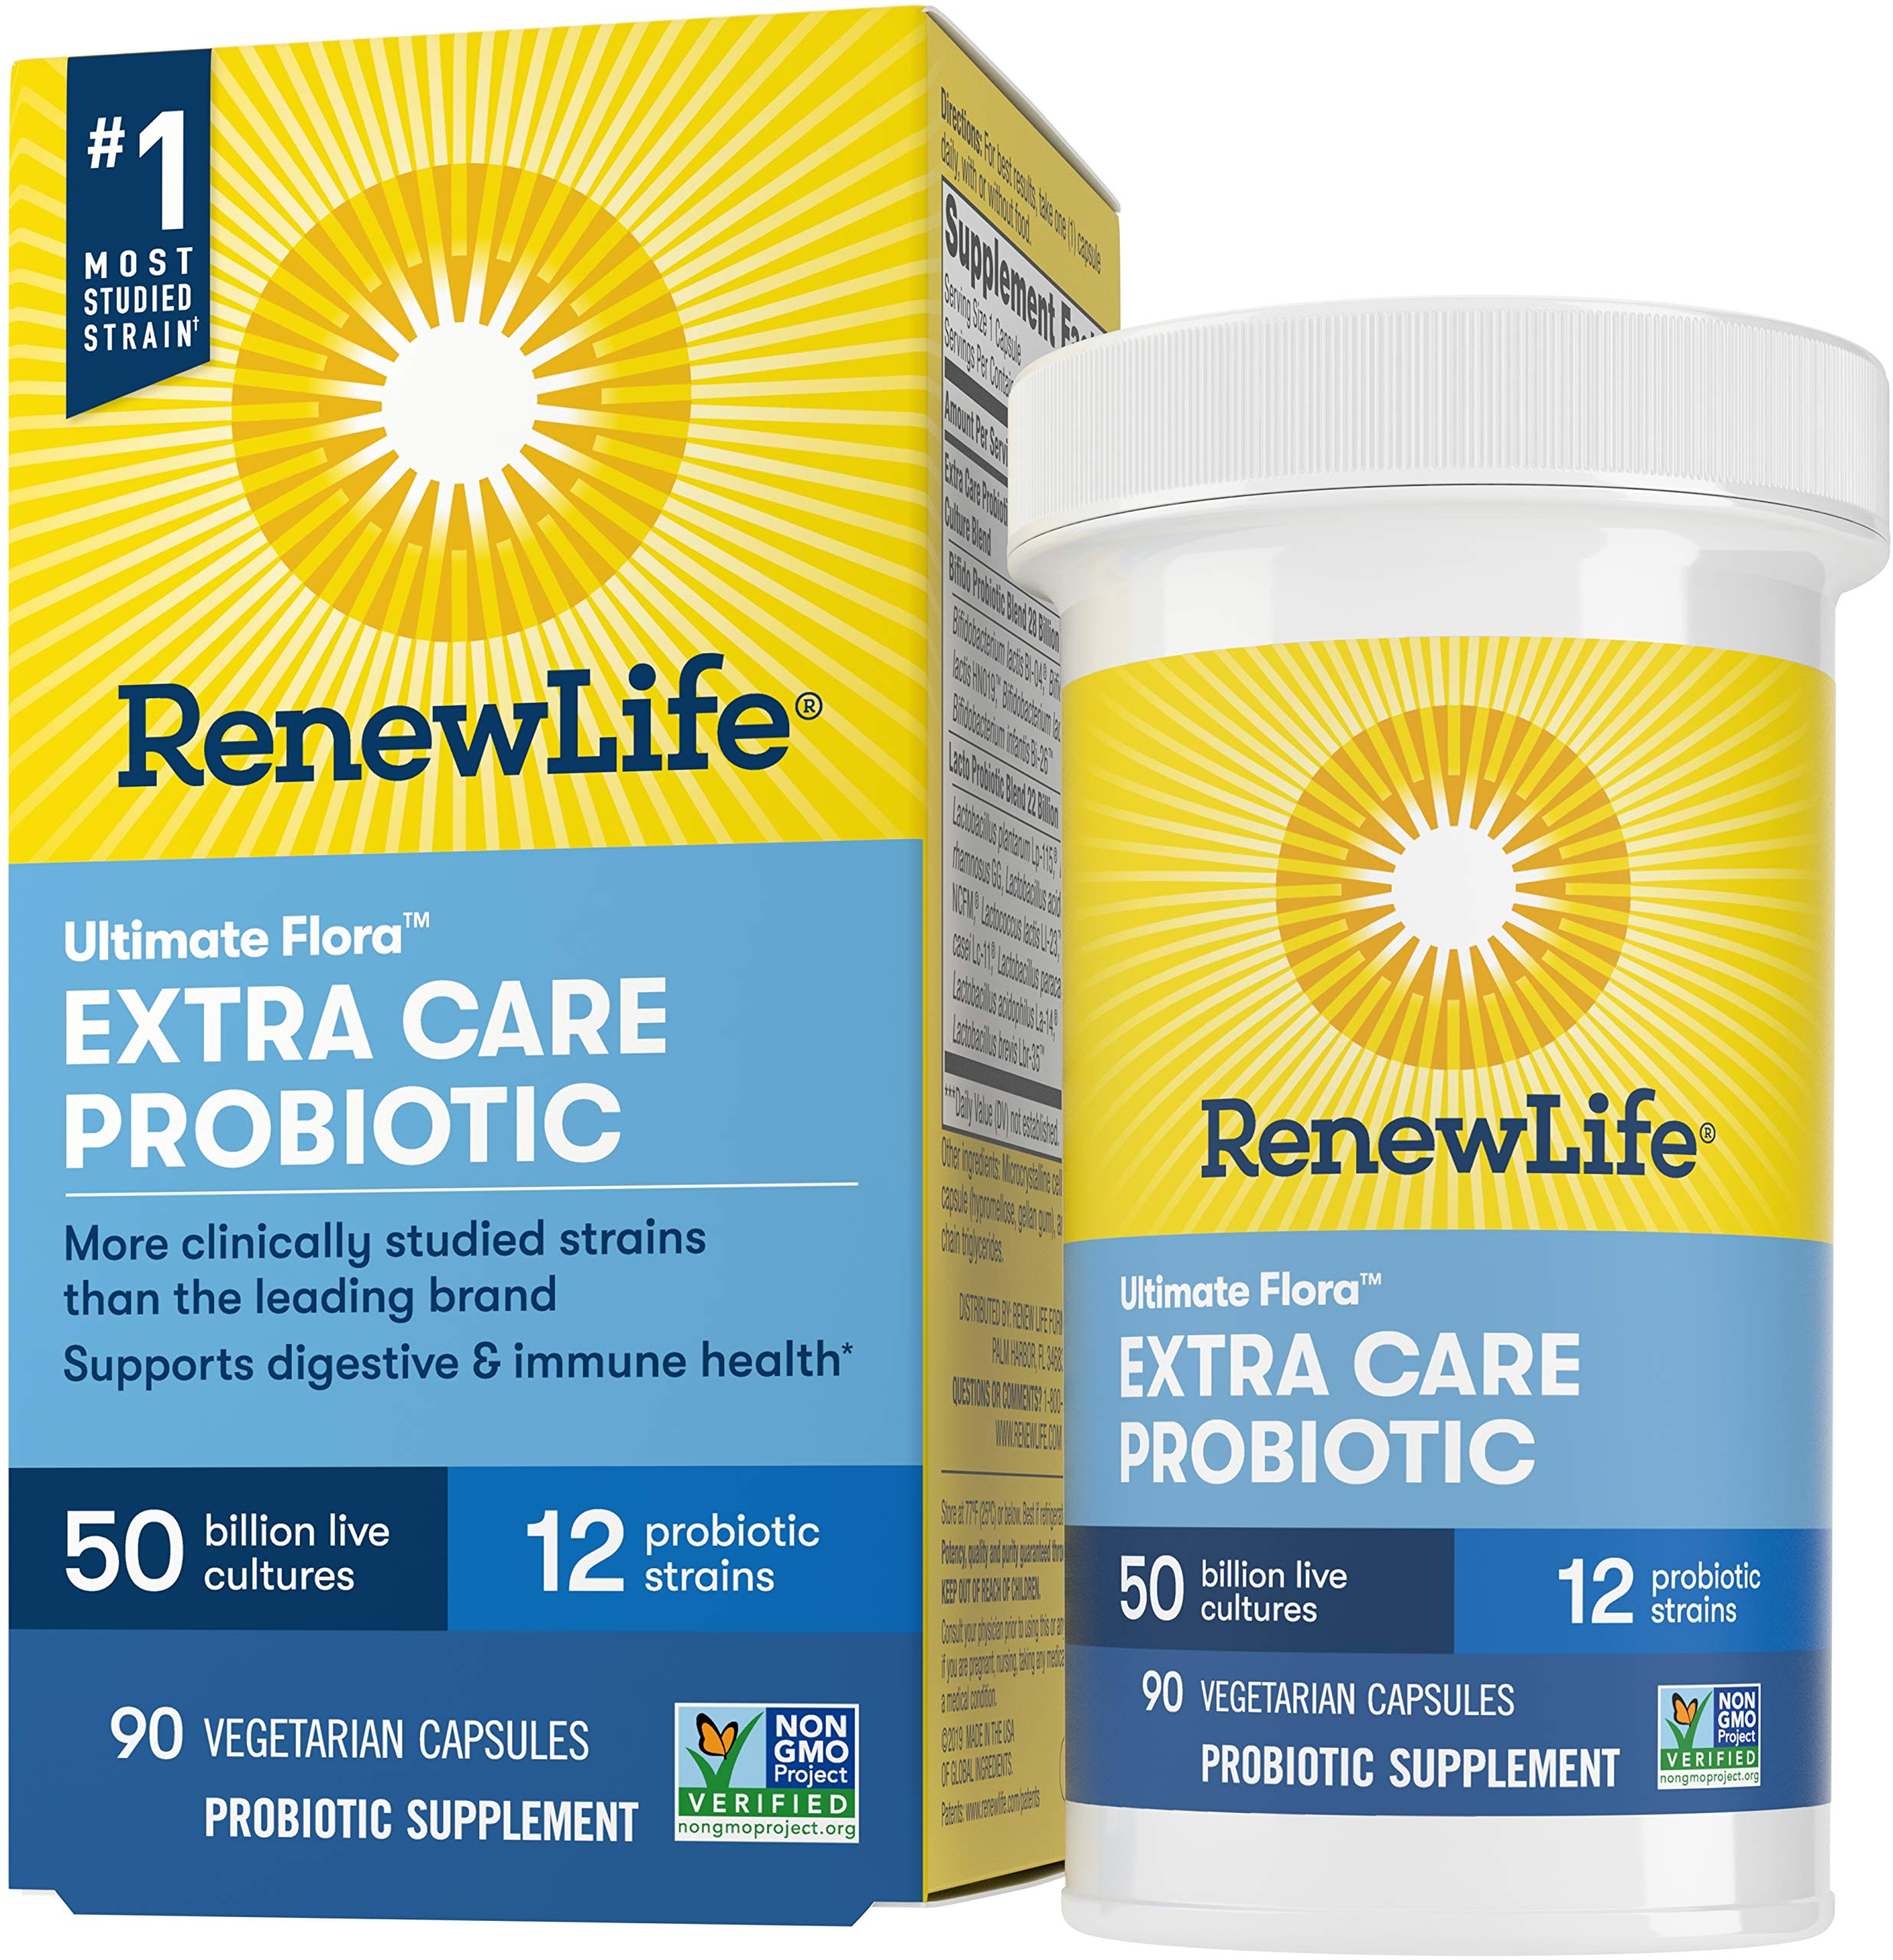 Renew Life Adult Probiotics 50 Billion CFU Guaranteed, Probiotic Supplement, 12 Strains, Shelf Stable, Gluten Dairy & Soy Free, 90 Capsules, Ultimate Flora Extra Care - 60 Day Money Back Guarantee